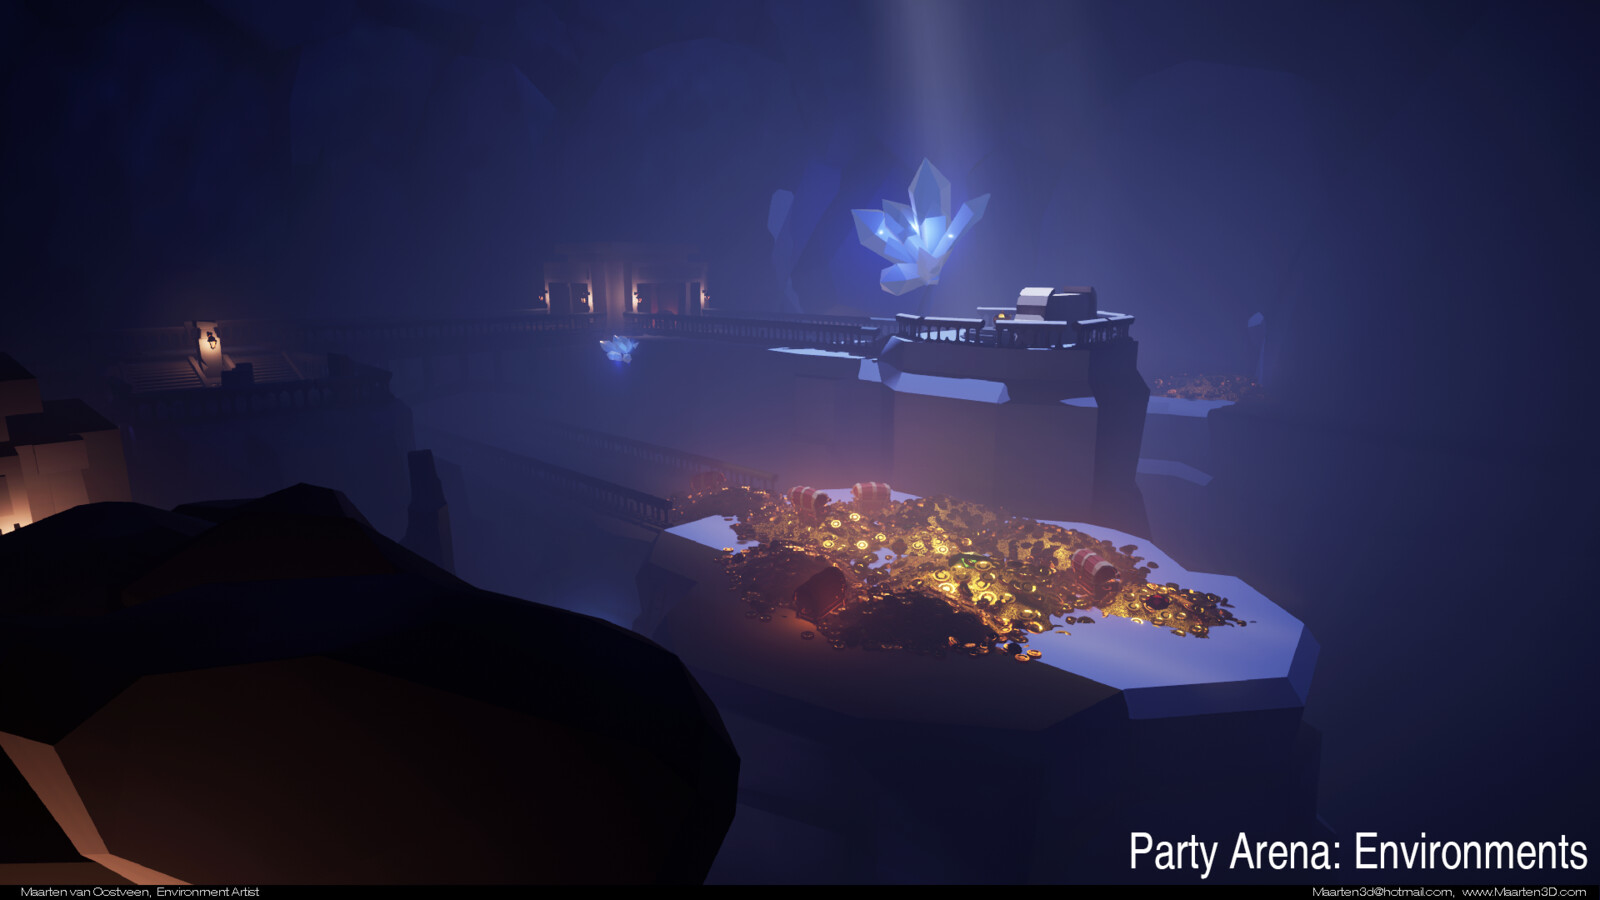 Party Arena Environment art.